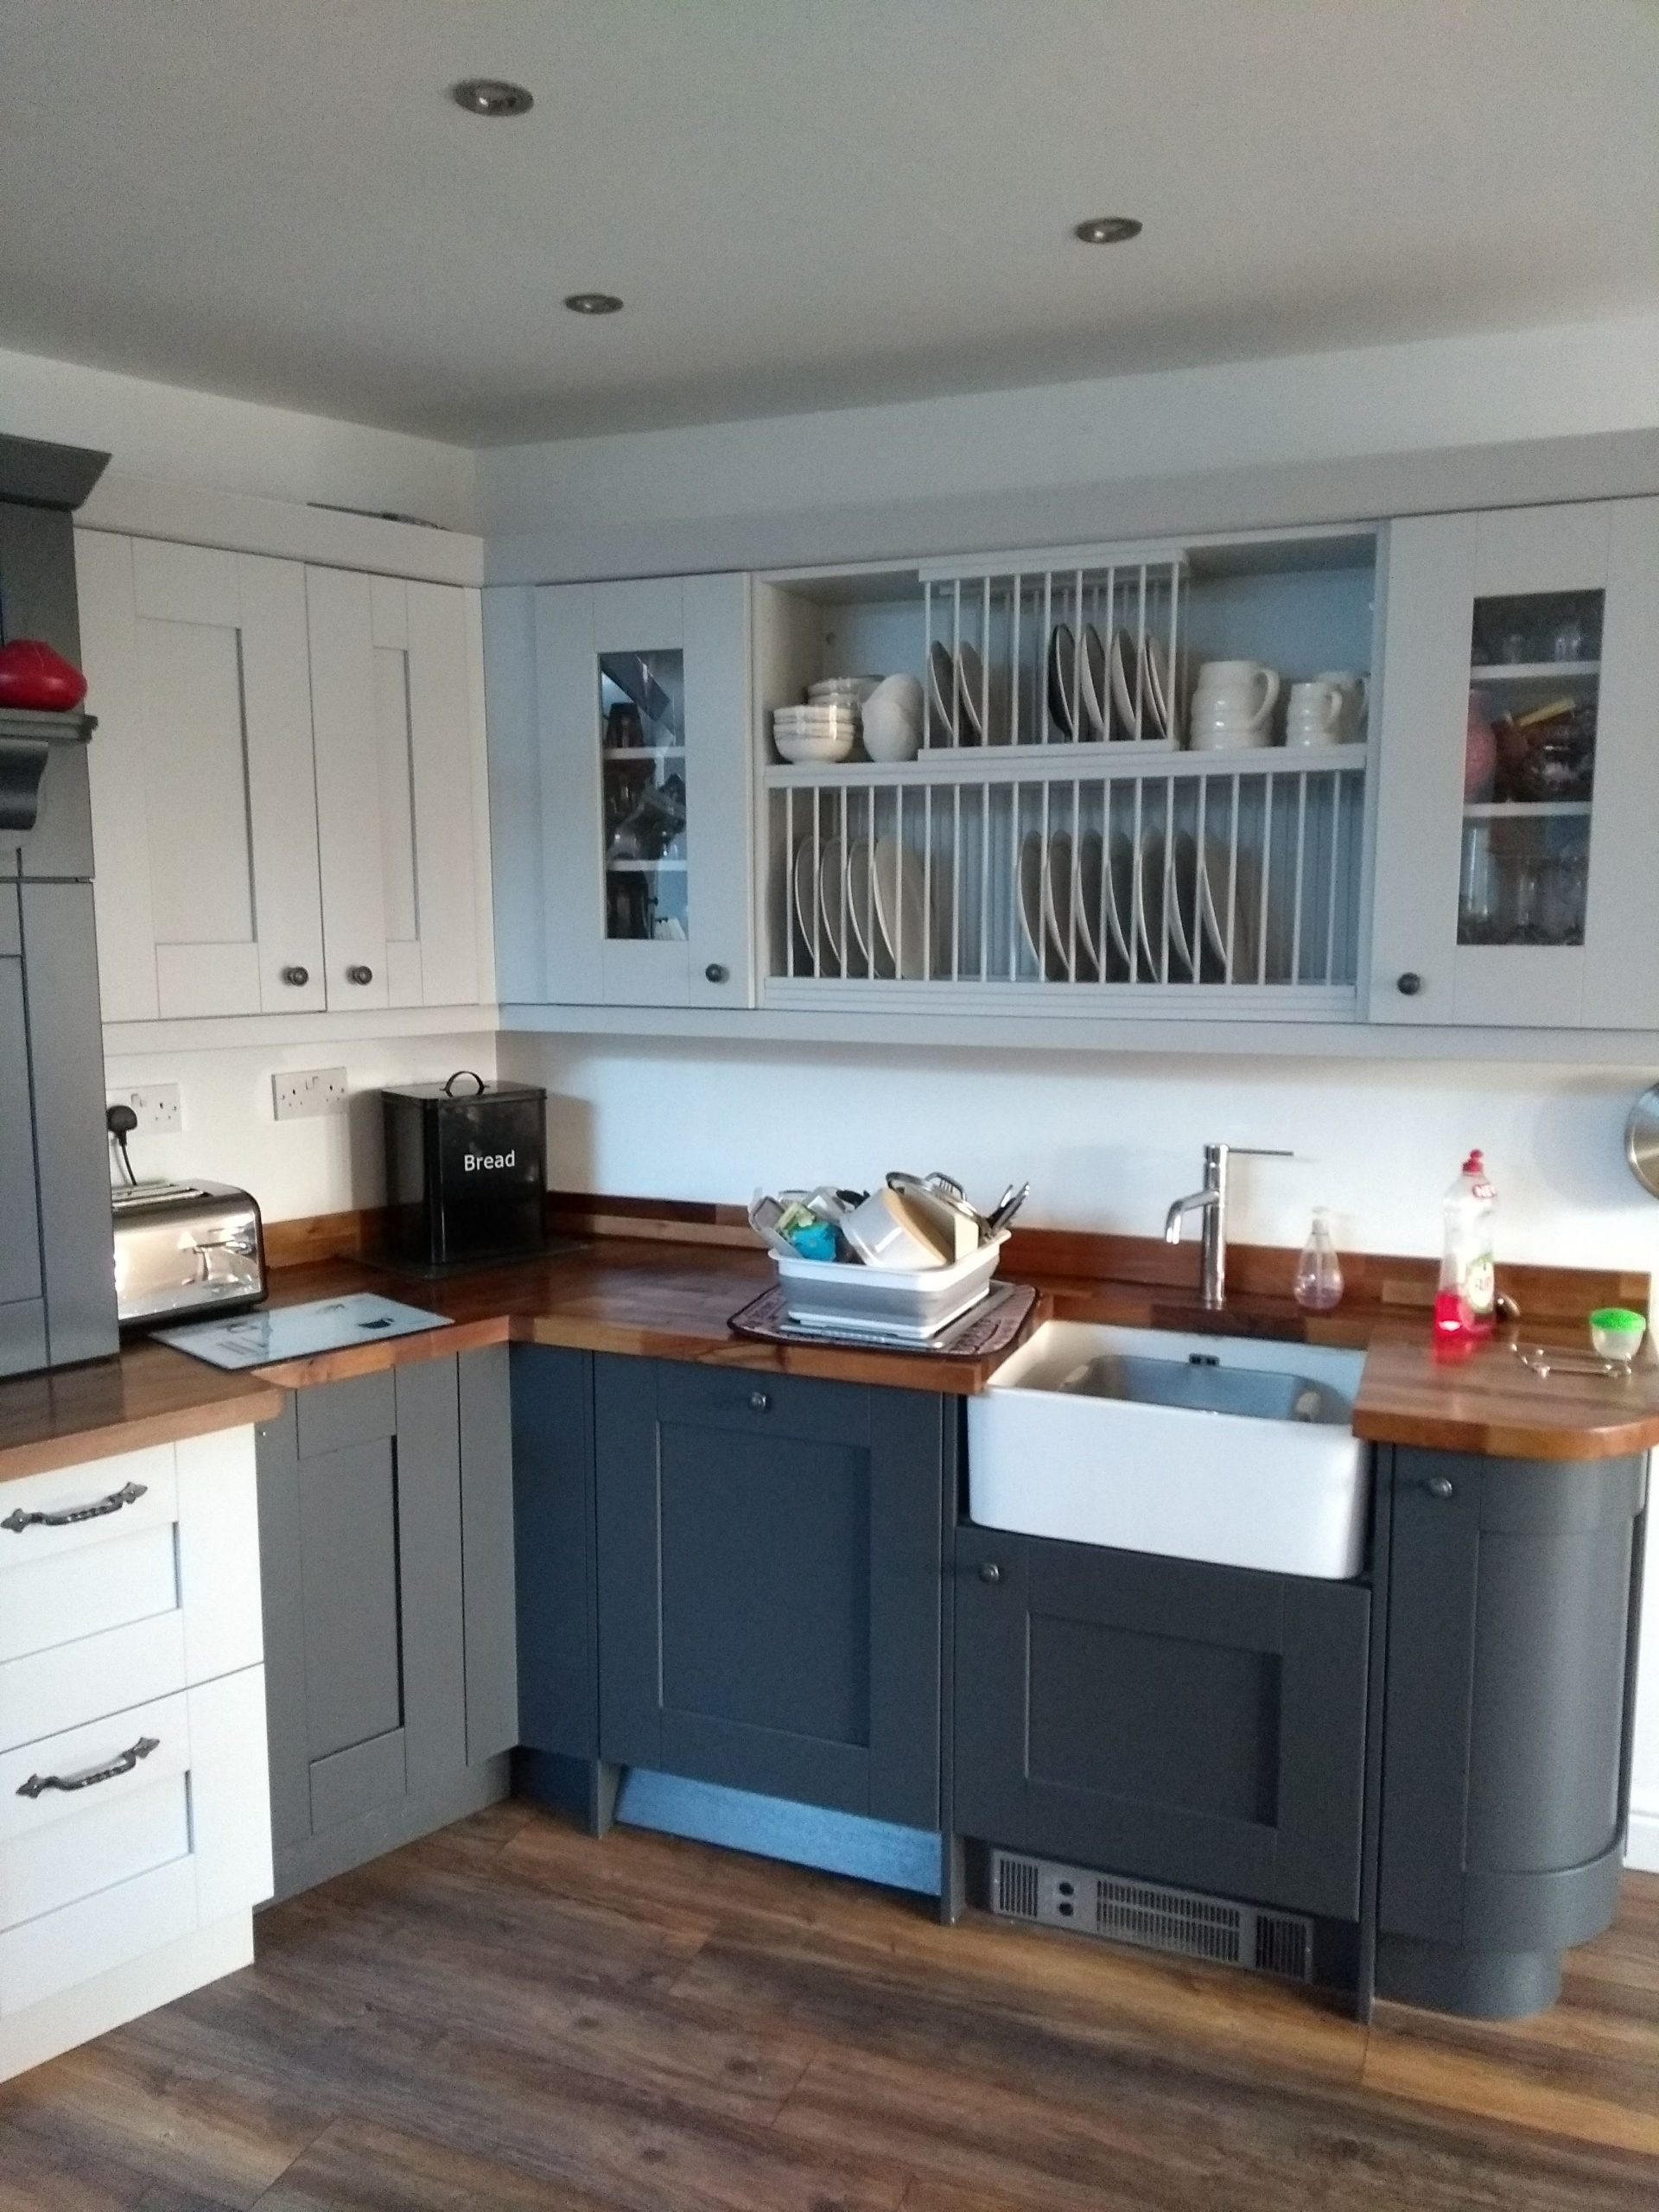 WREN Kitchen Cabinets installed by CL Joinery